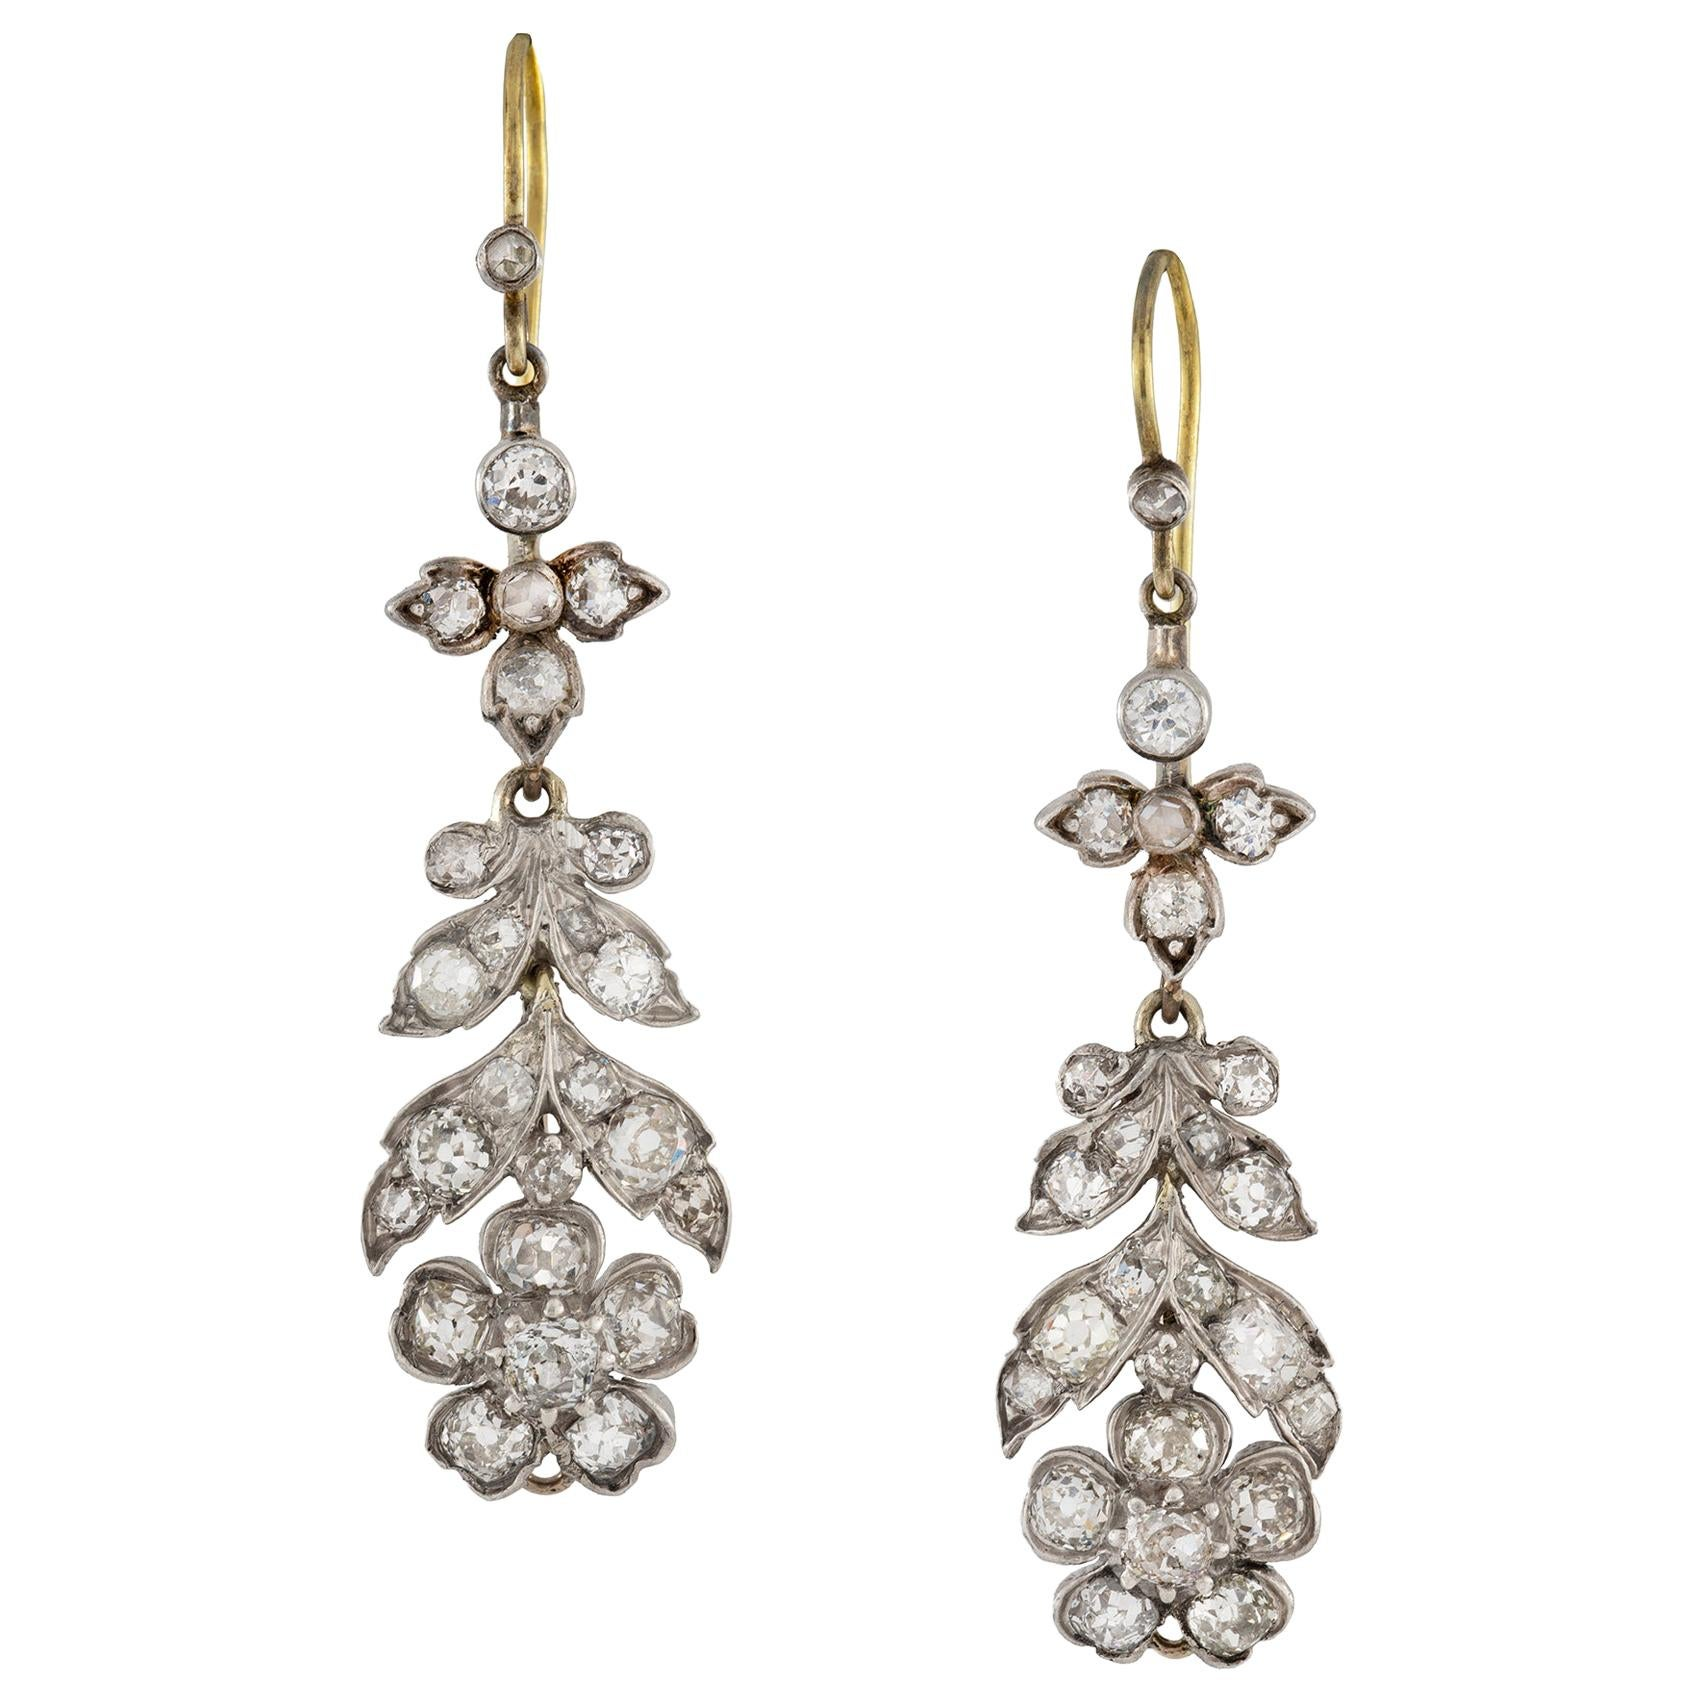 Pair of Victorian Drop Earrings